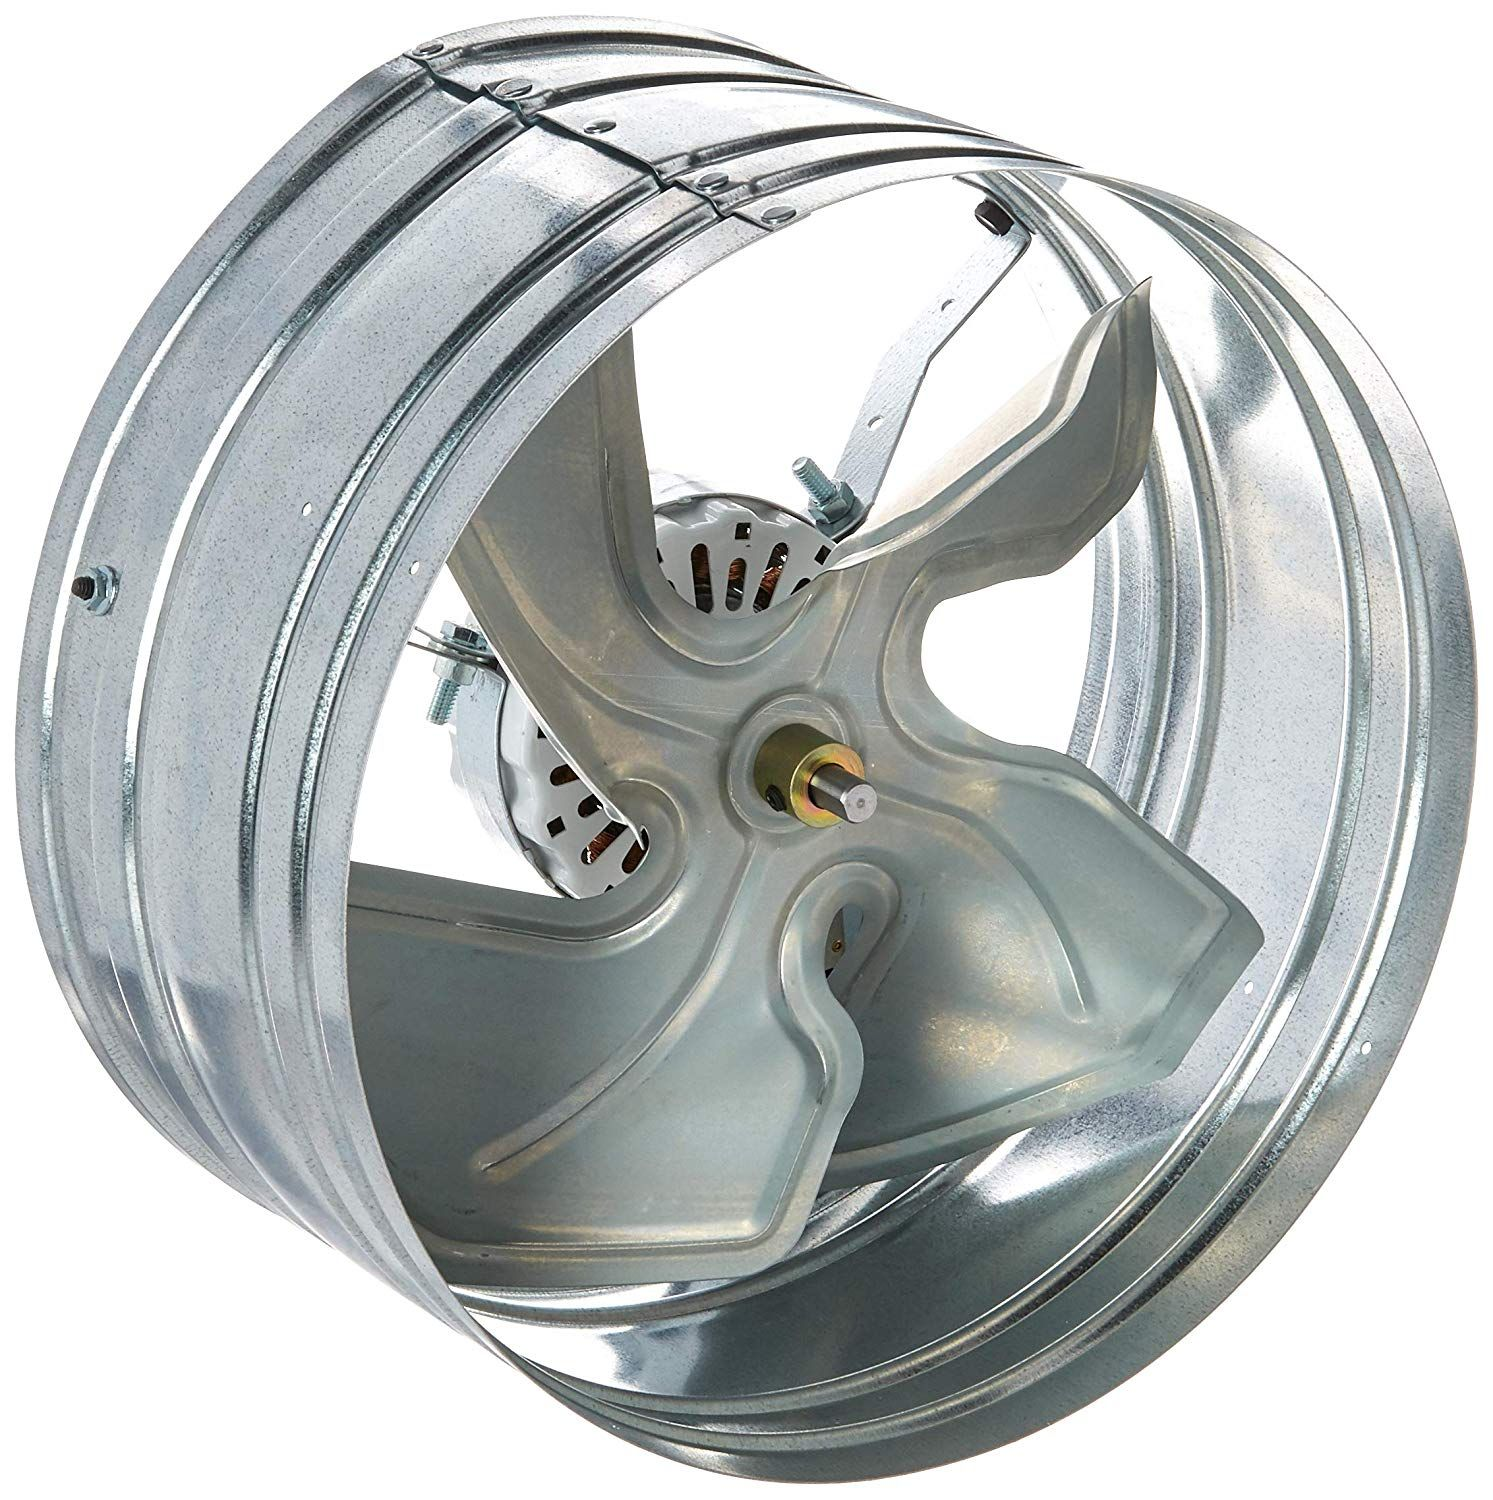 Broan 353 Gable Mount 120 Volt Powered Attic Ventilator 1020 Cfm See This Great Product This Is An Affiliate Link Broan Attic Fans Metal Roof